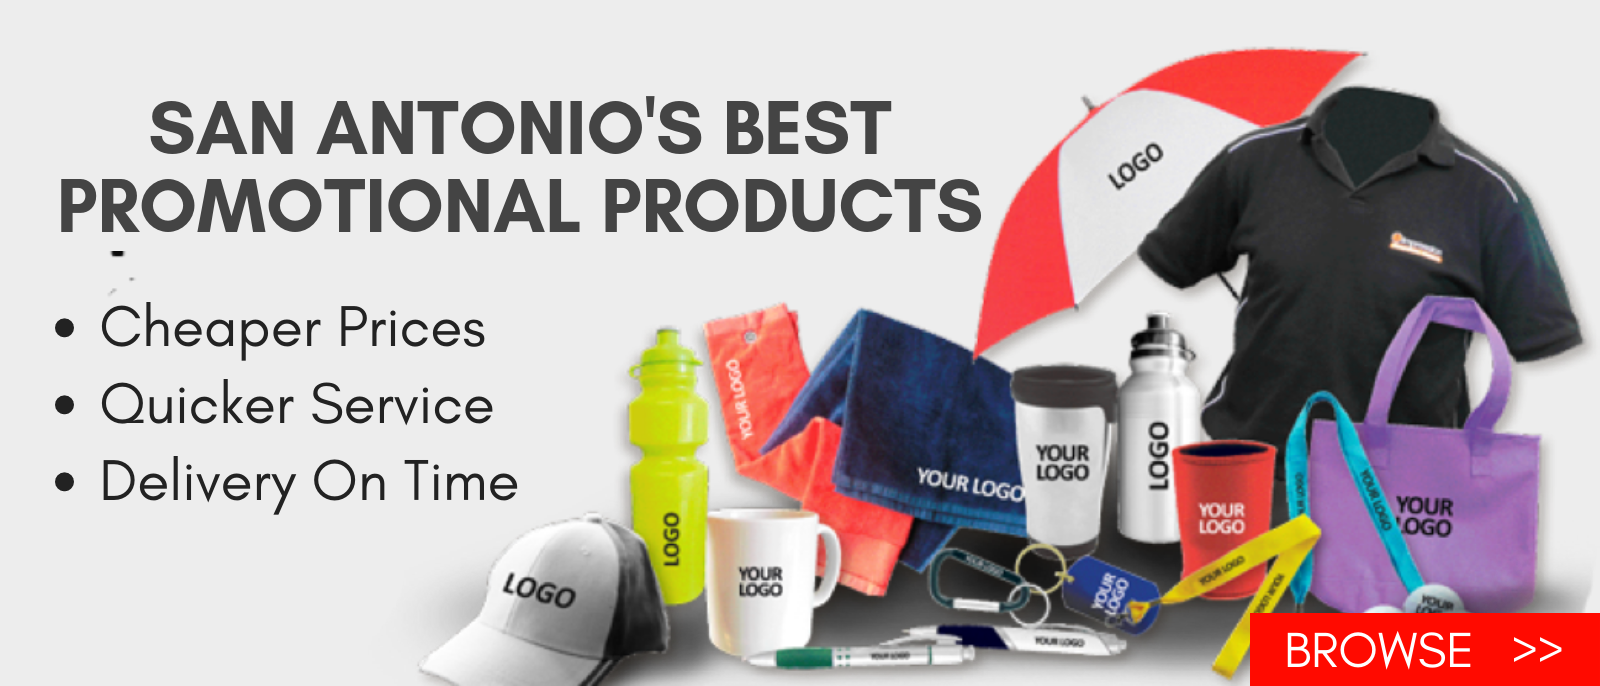 e12487d3926f Promotional Products San Antonio Buy Local in Texas from Texans - grow your  business